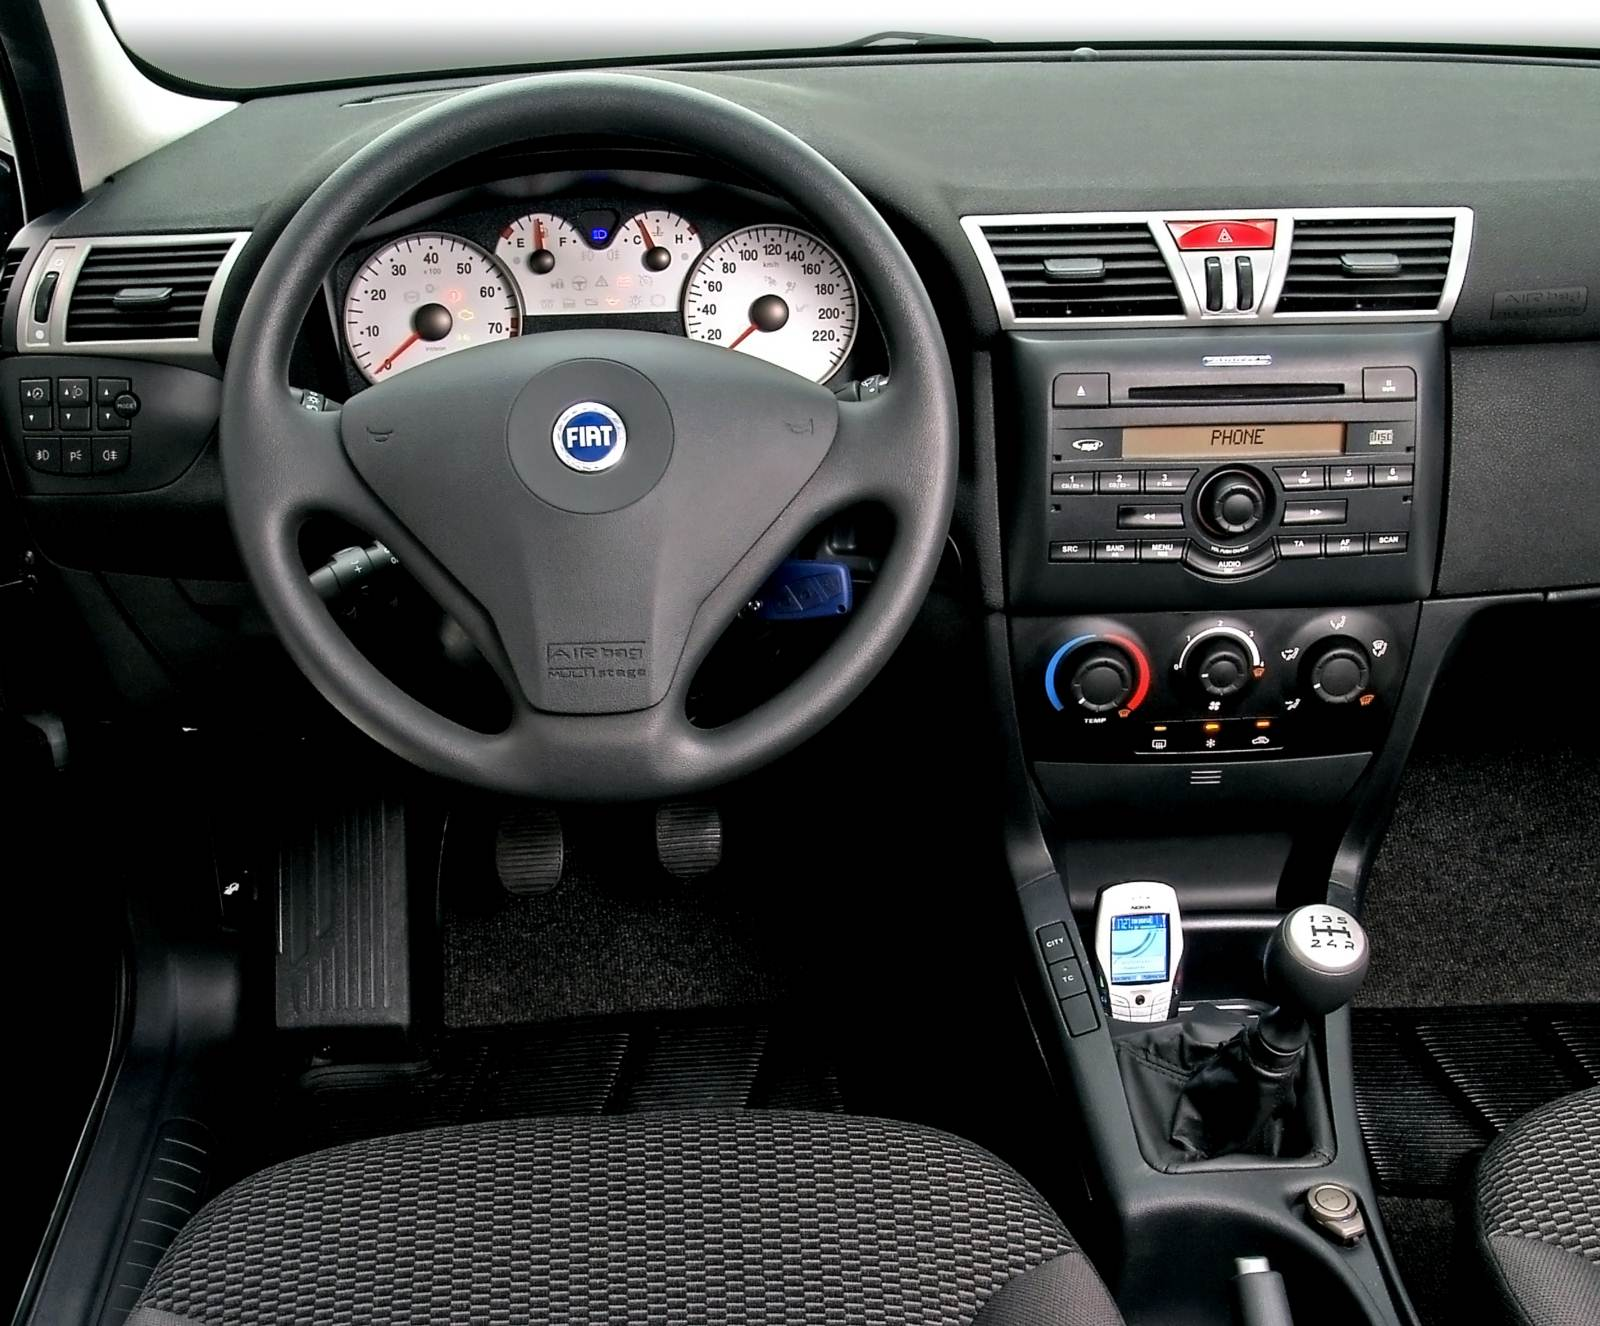 Car Picker Fiat Stilo Interior Images